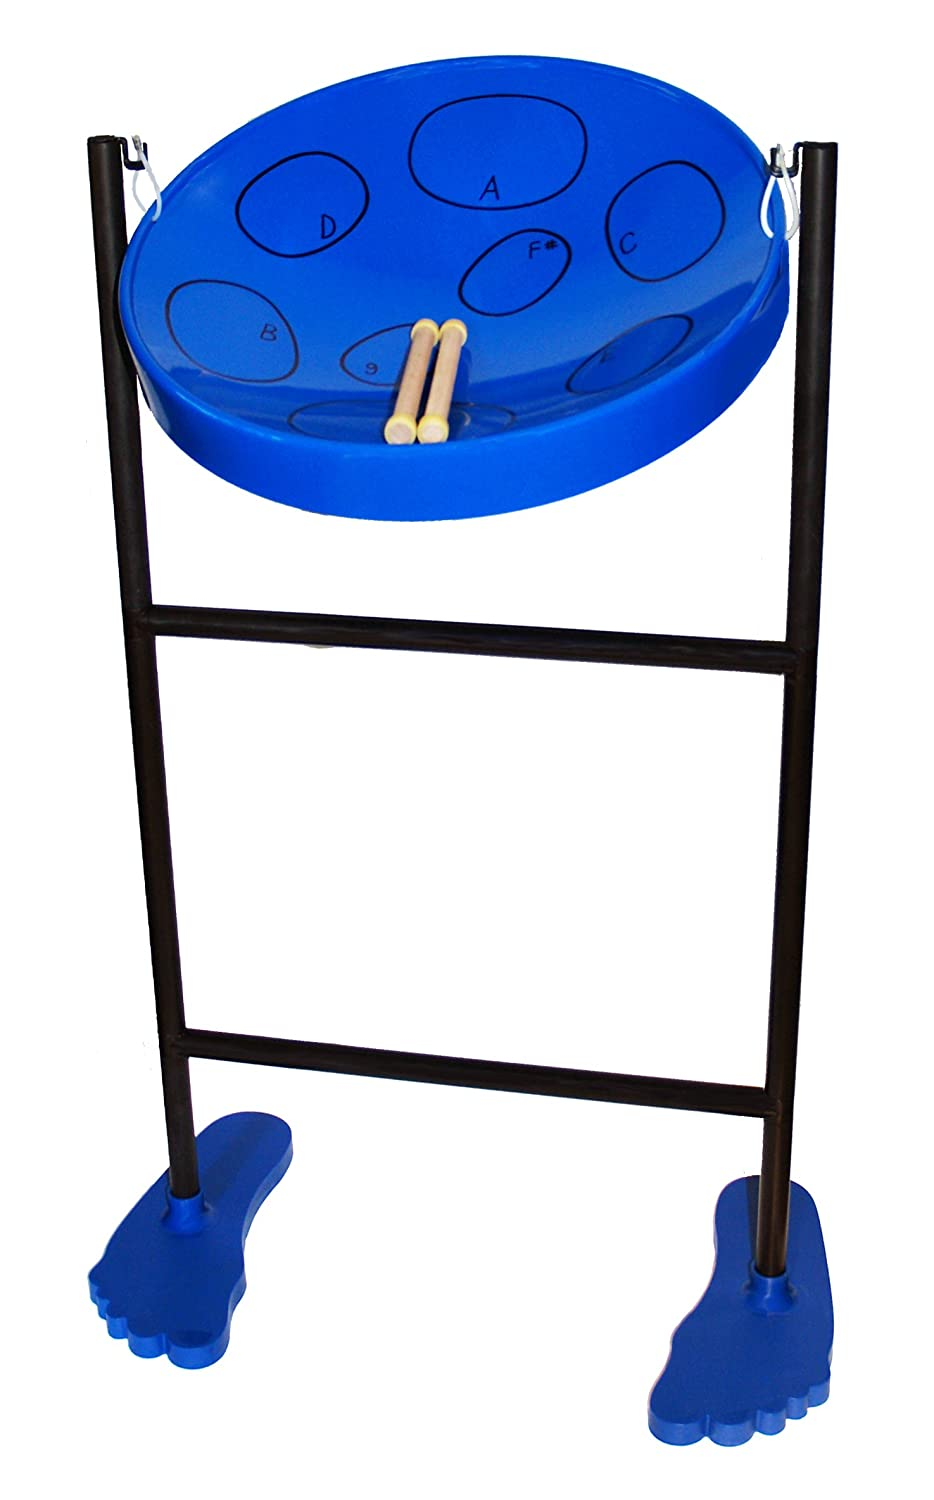 Jumbie Jam Steel Drum Musical Instrument, Blue Panyard Inc. W1058